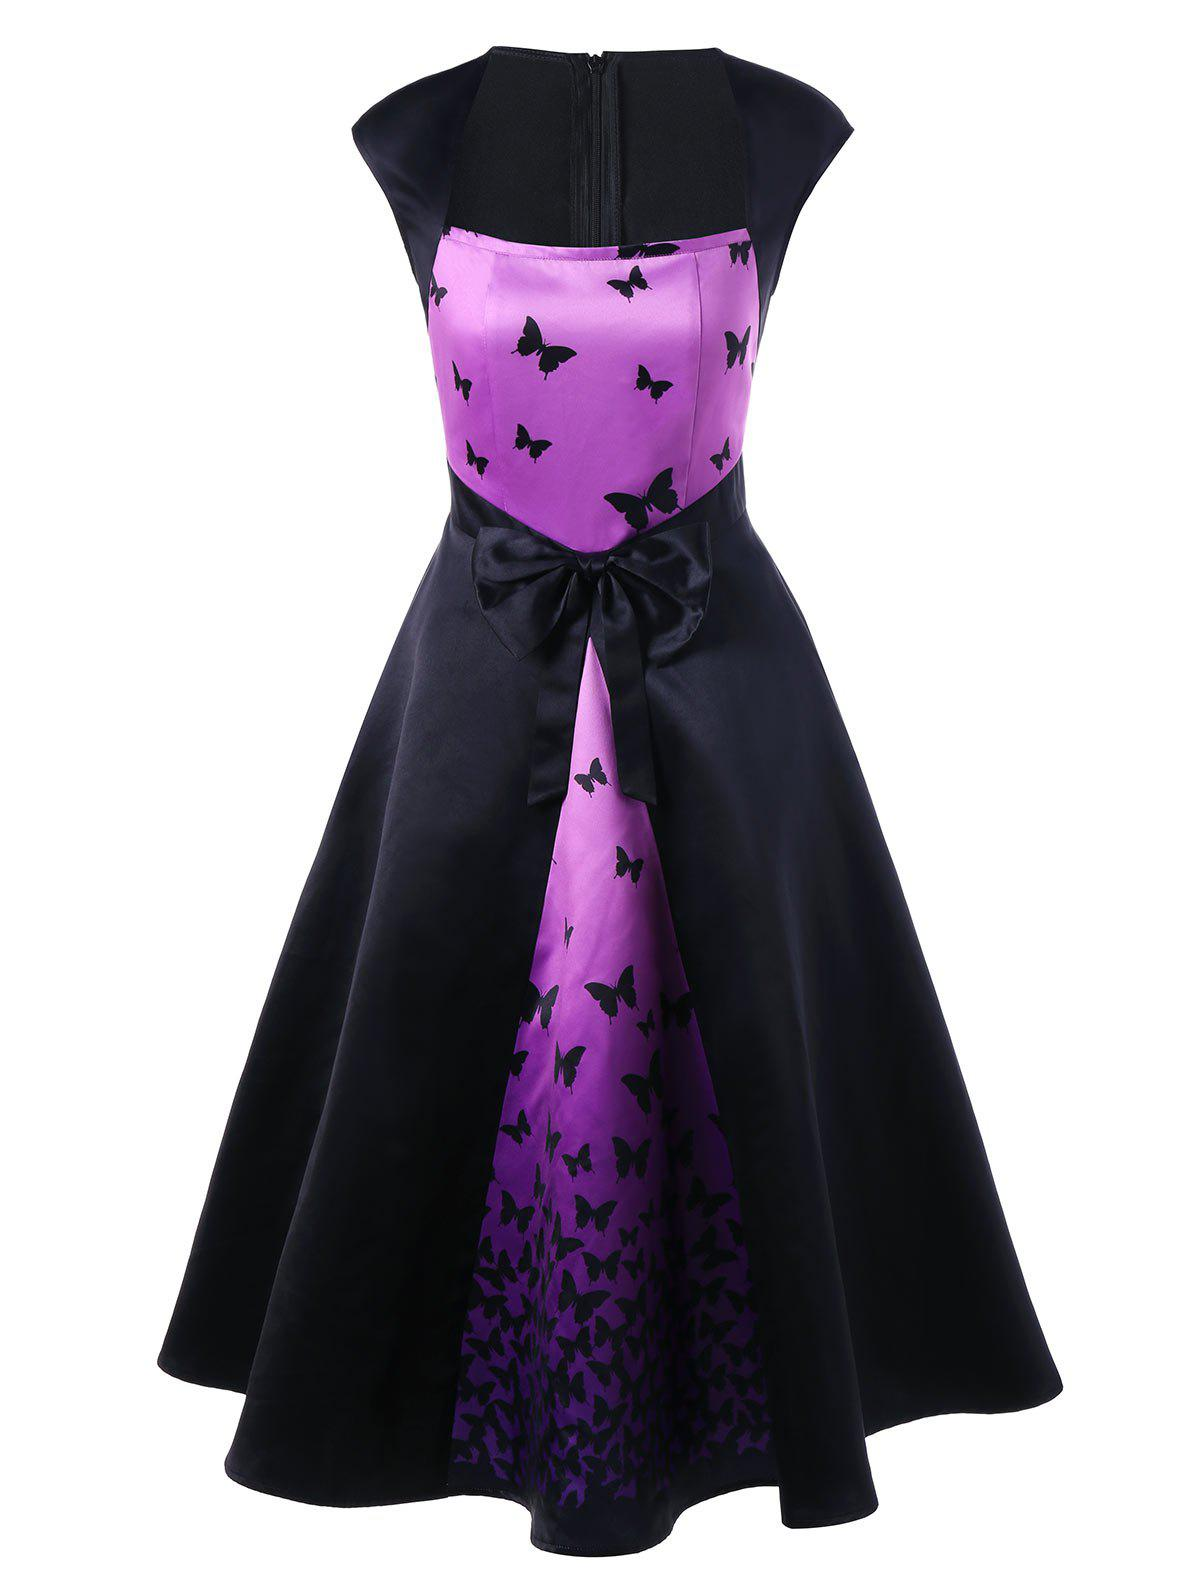 Bowknot Embellished Butterfly Print Tea Length Vintage Dress - BLACK 2XL